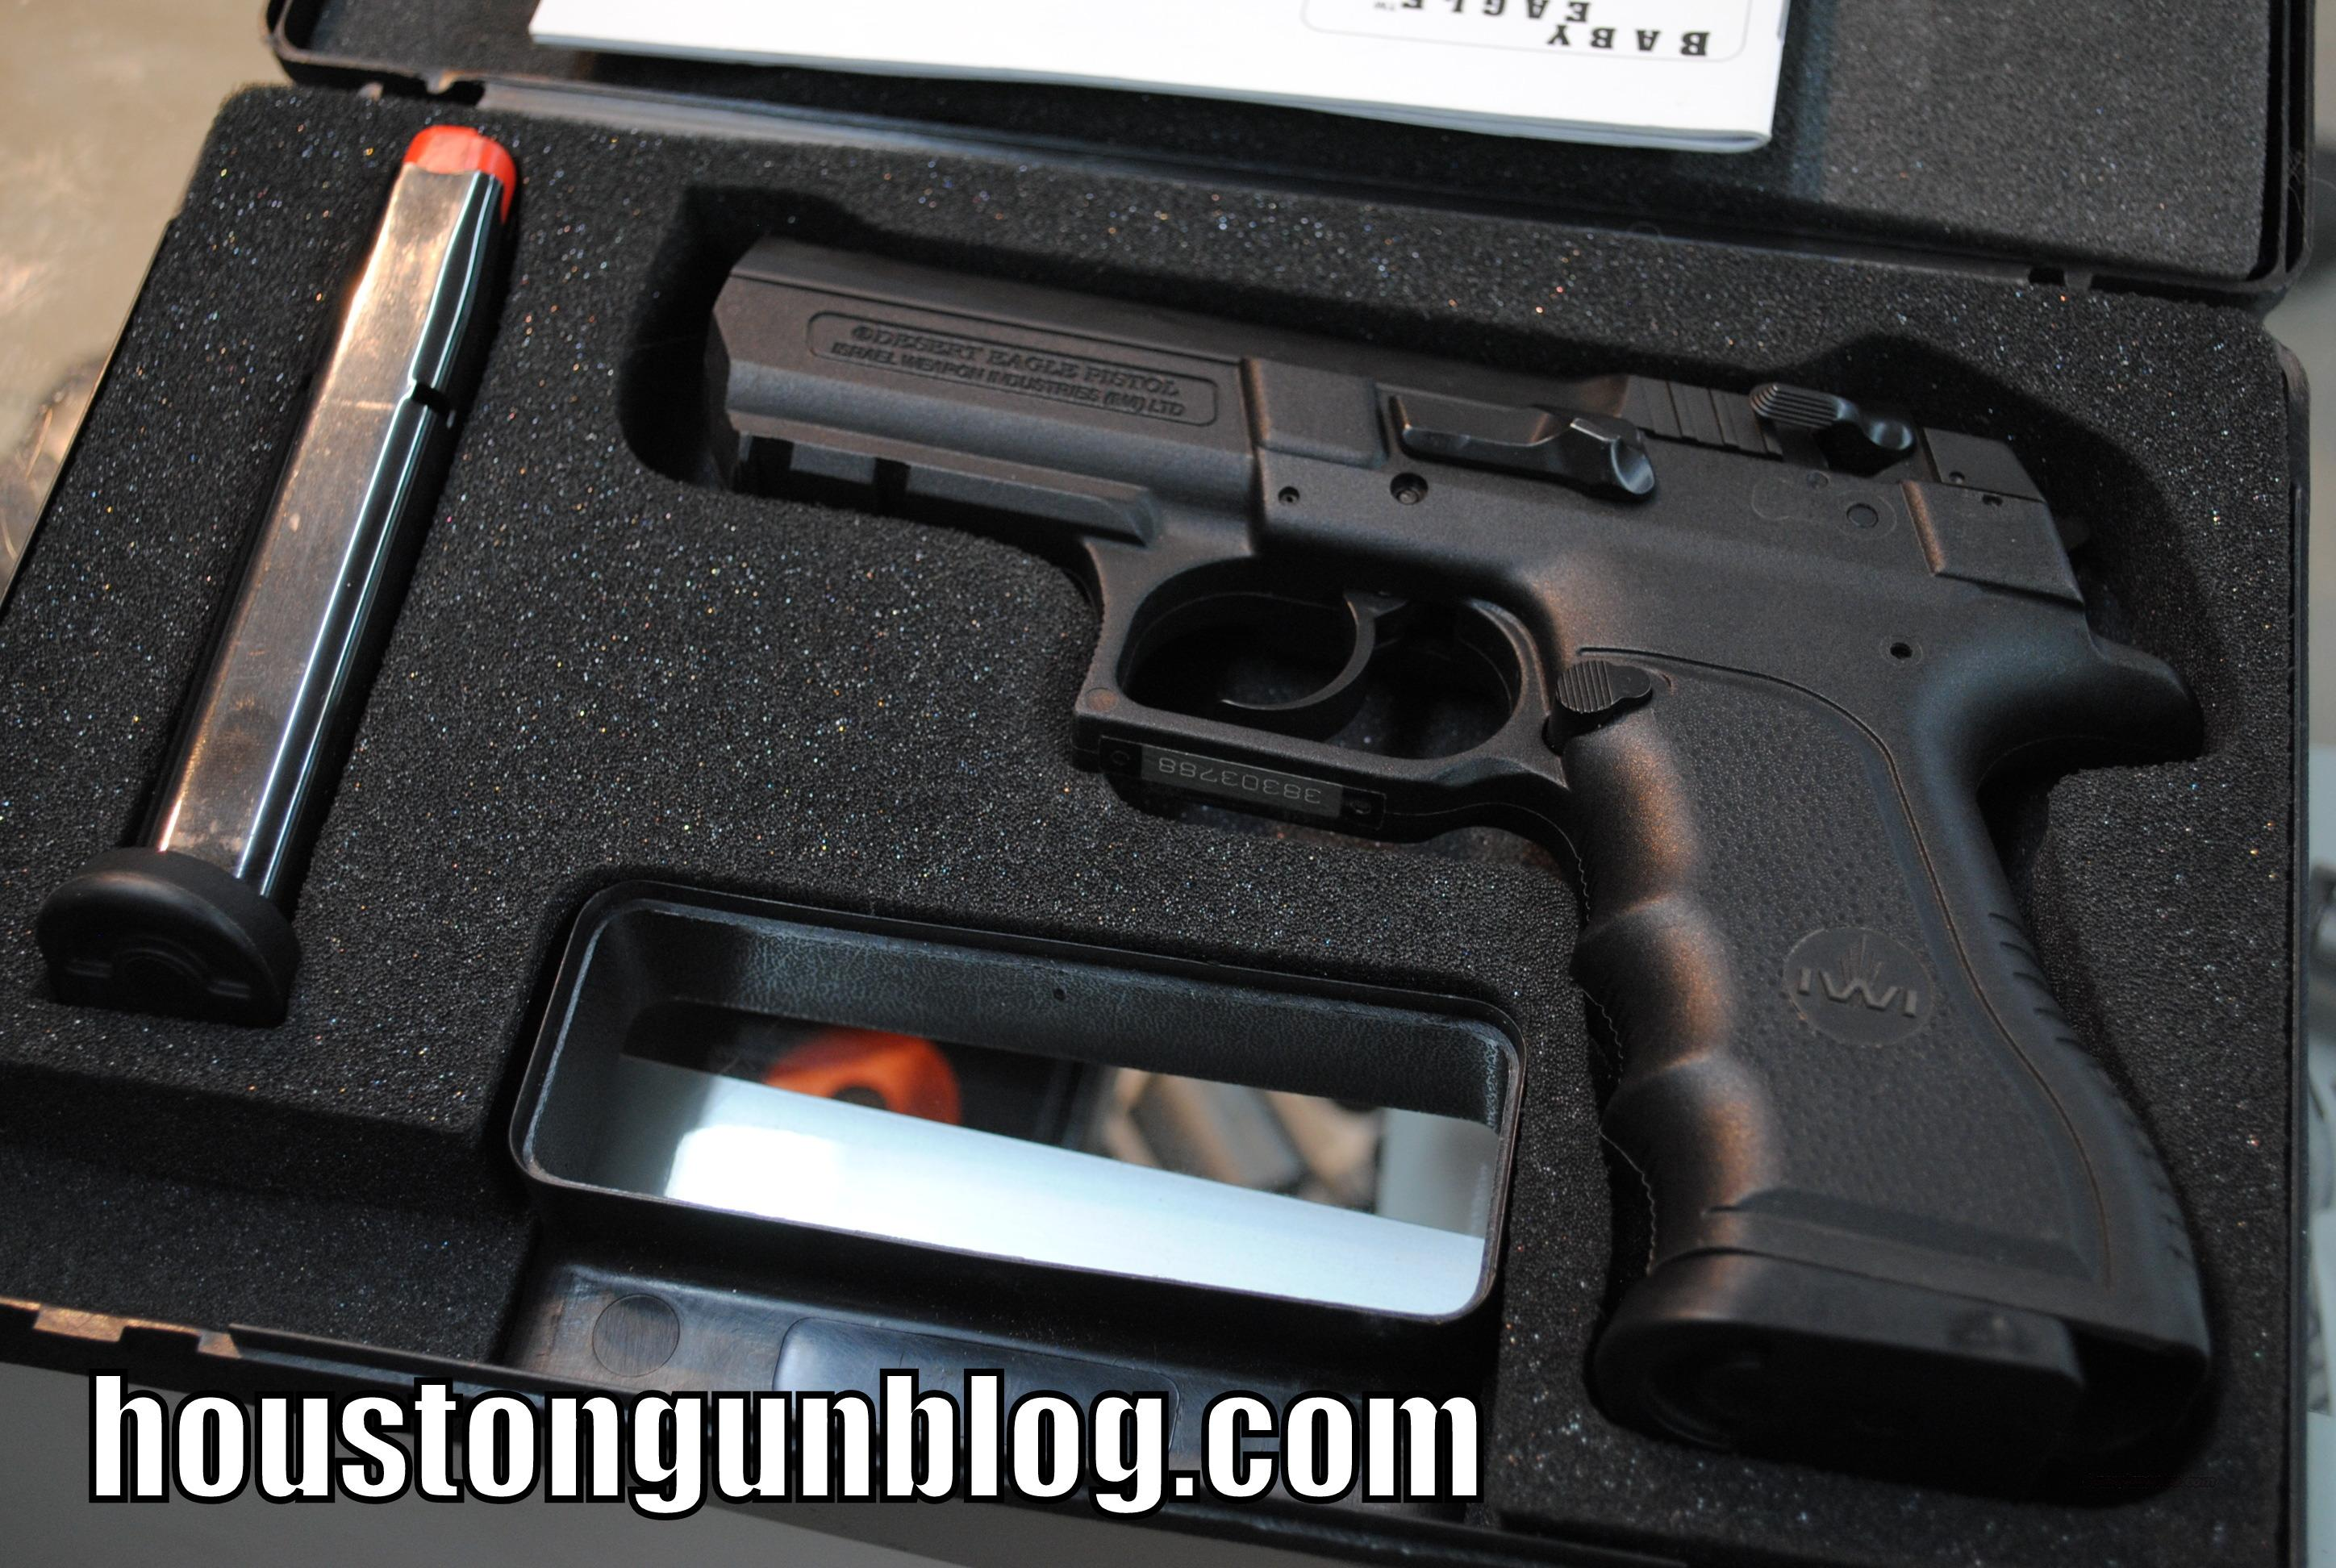 Magnum Research Baby Eagle 40 SW Like NEW 2 Mags   Guns > Pistols > Desert Eagle/IMI Pistols > Baby Eagle